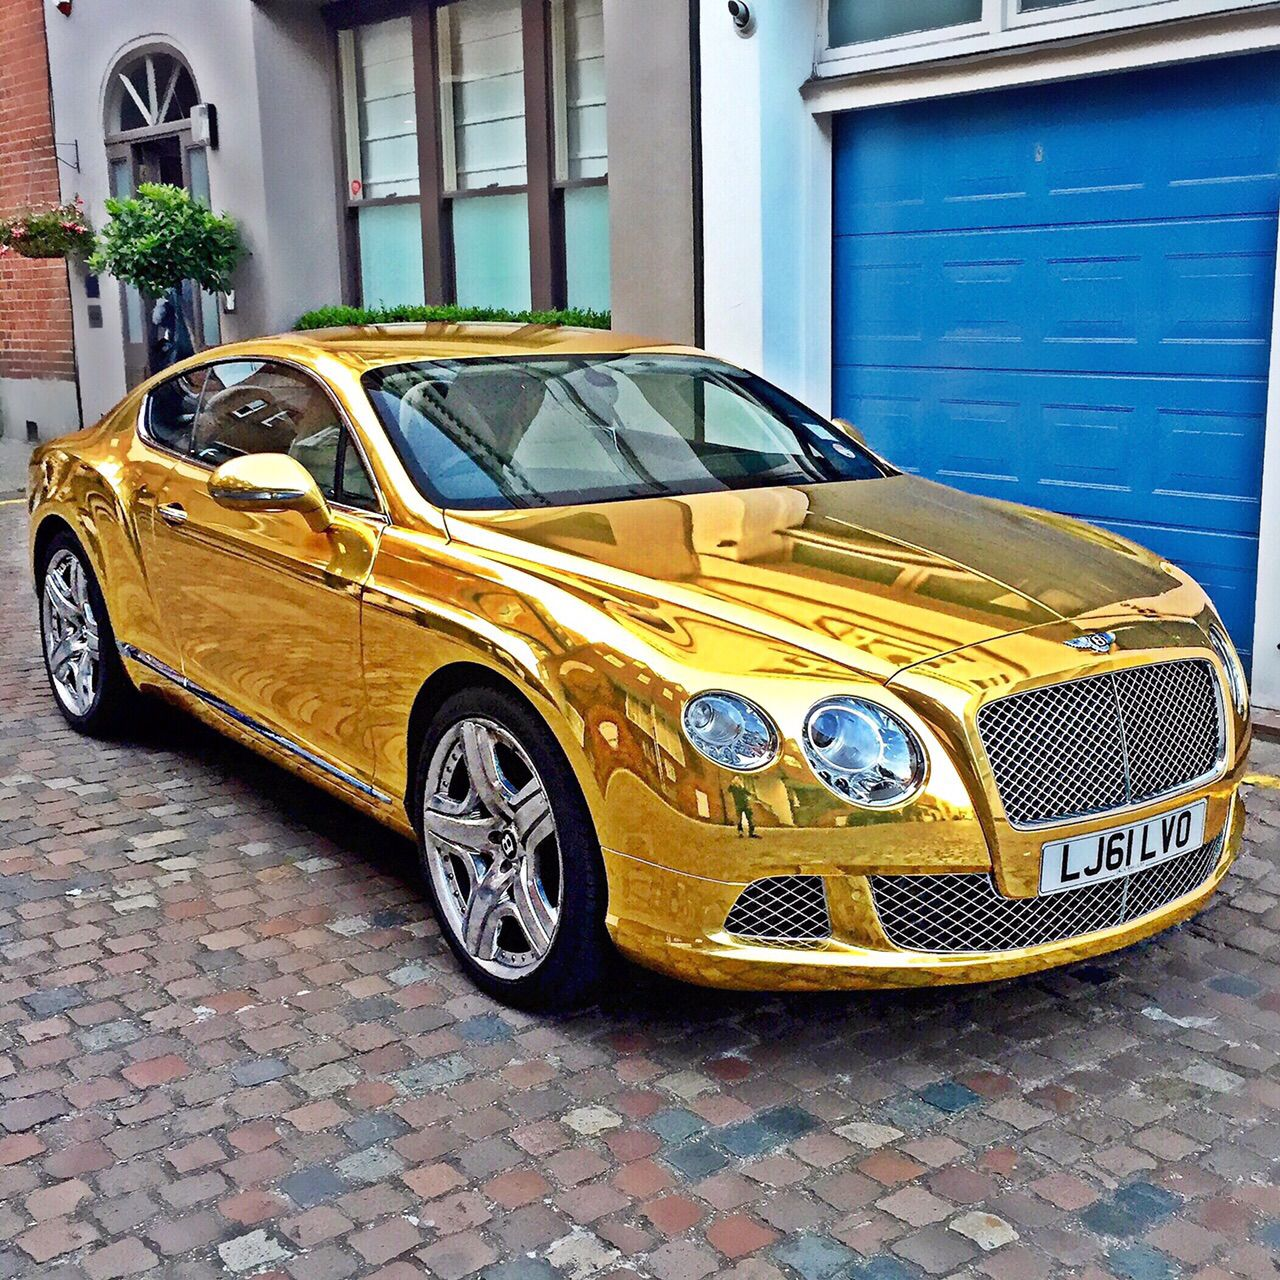 Bentley Gt Vinyl Wrapped Chrome Gold By Wrapping Cars London Www Wrappingcars Co Uk Best Luxury Cars Bentley Gt Bentley Car